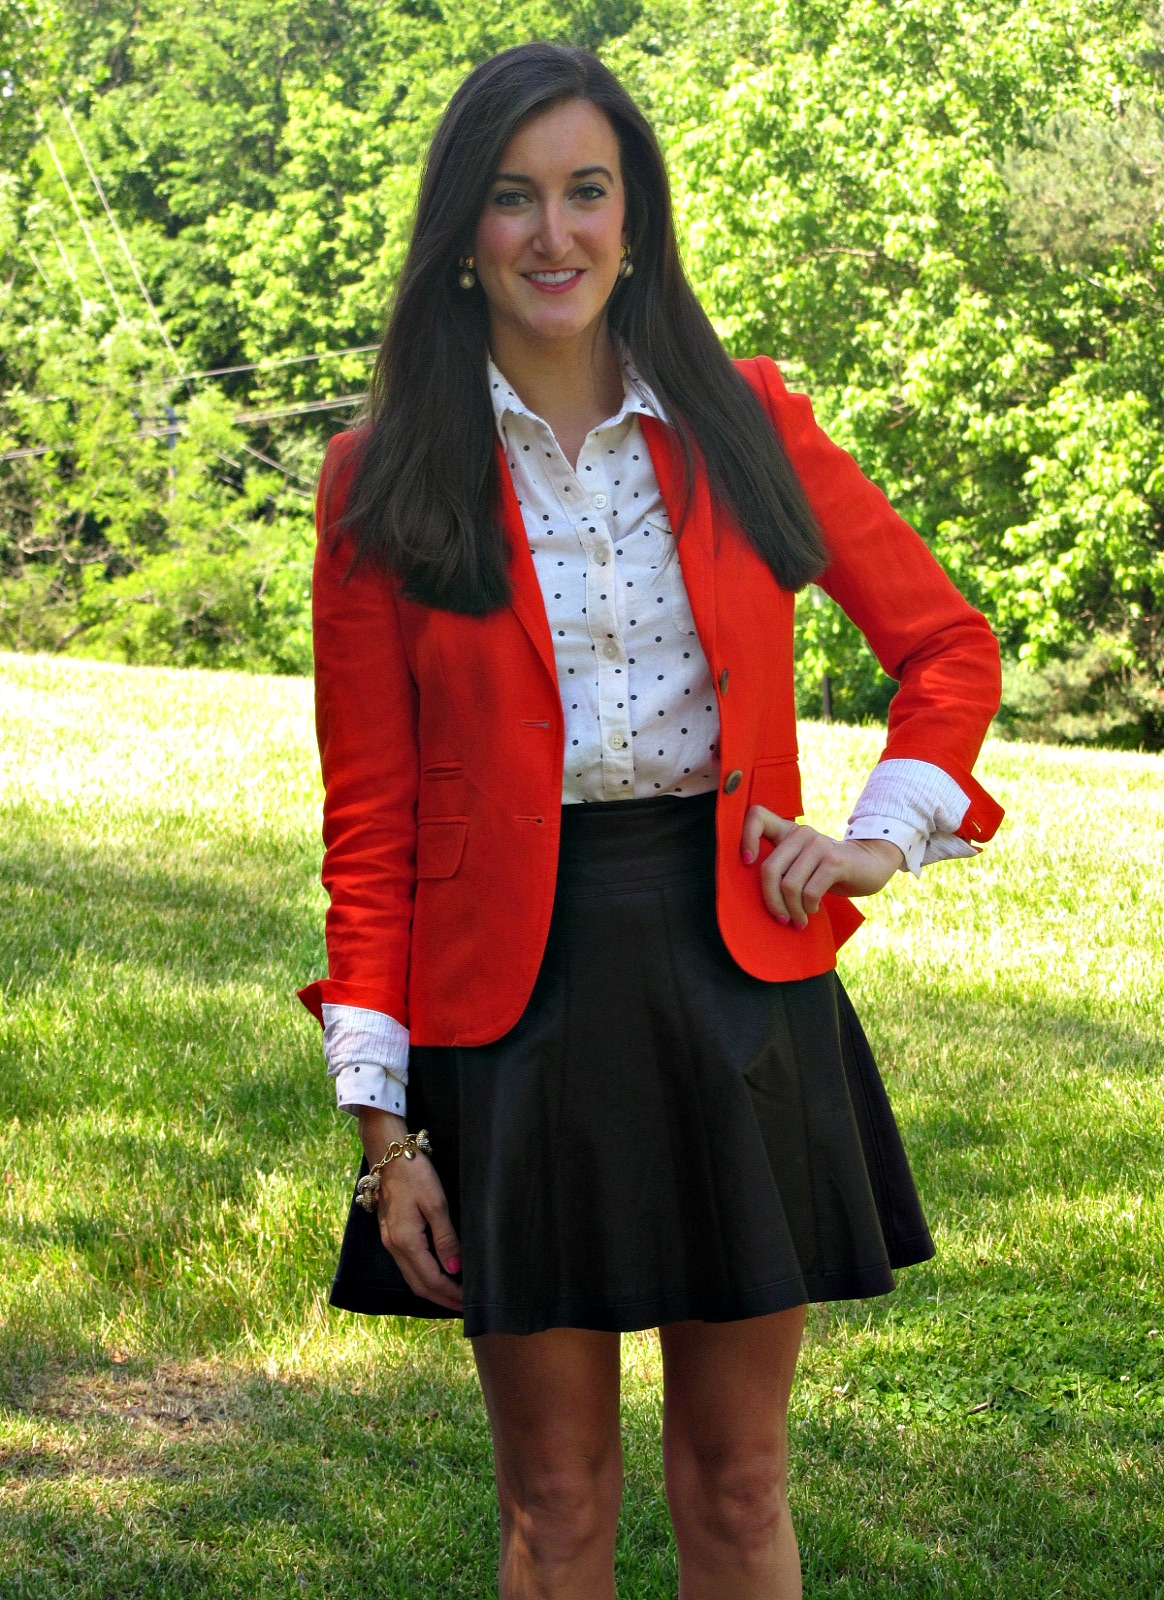 Urban Outfitters Polka Dot Button Down, J.Crew Schoolboy Blazer, Urban Outfitters Leather Skirt